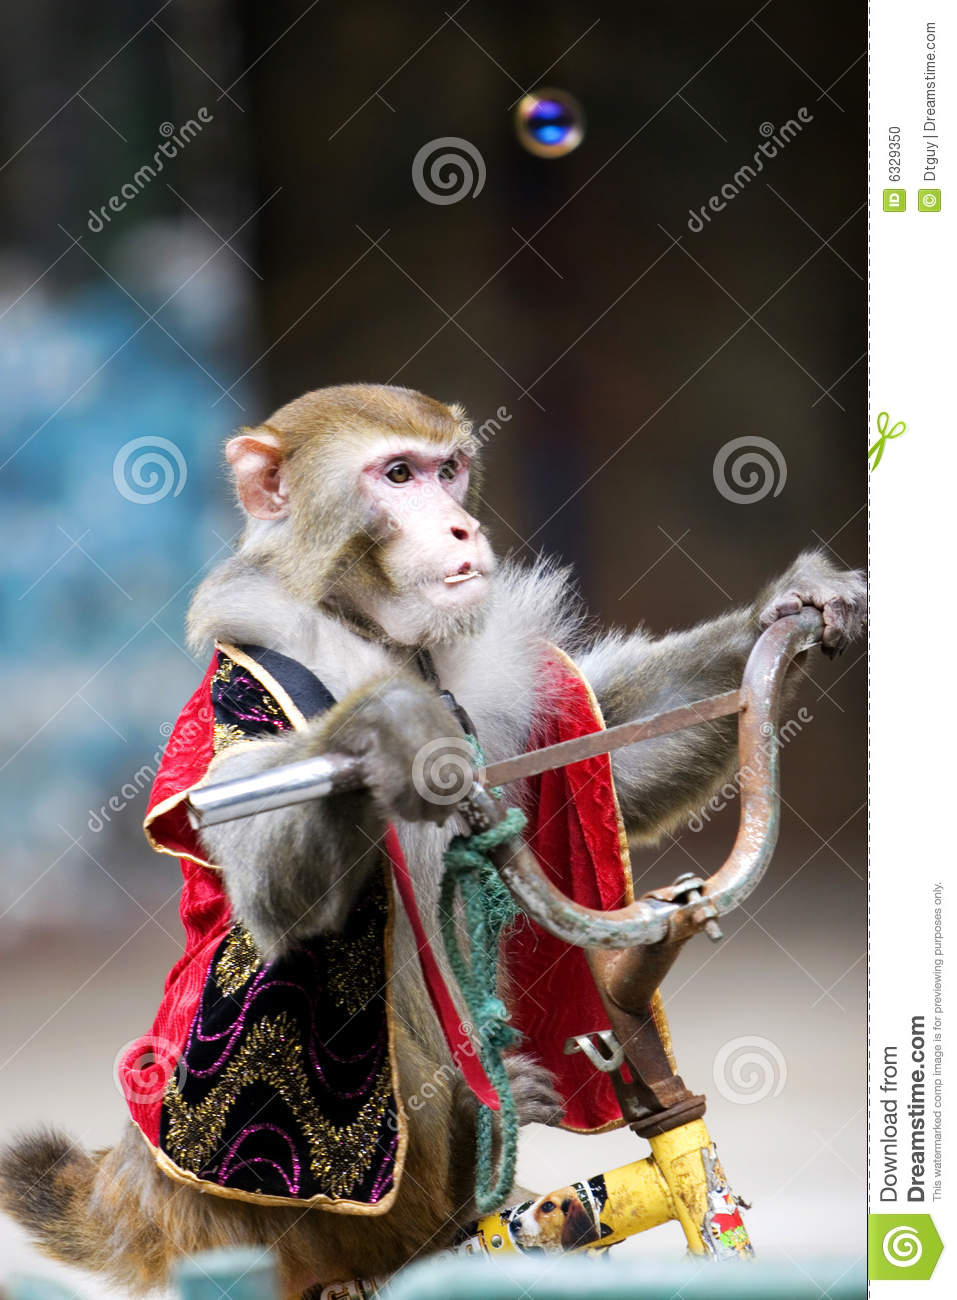 Monkey Cycling Of Circus Stock Photo Image Of Monkey